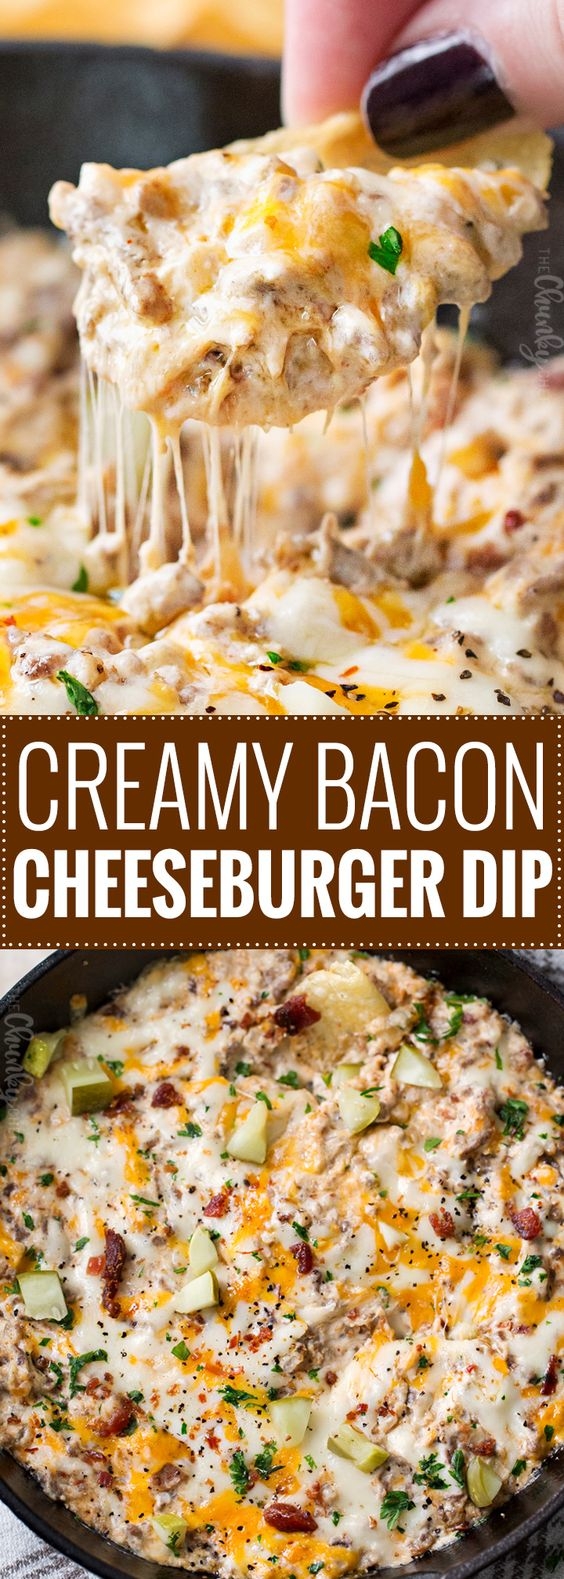 Creamy Skillet Bacon Cheeseburger Dip #appetizer #creamy #skillet #bacon #cheeseburger #dip